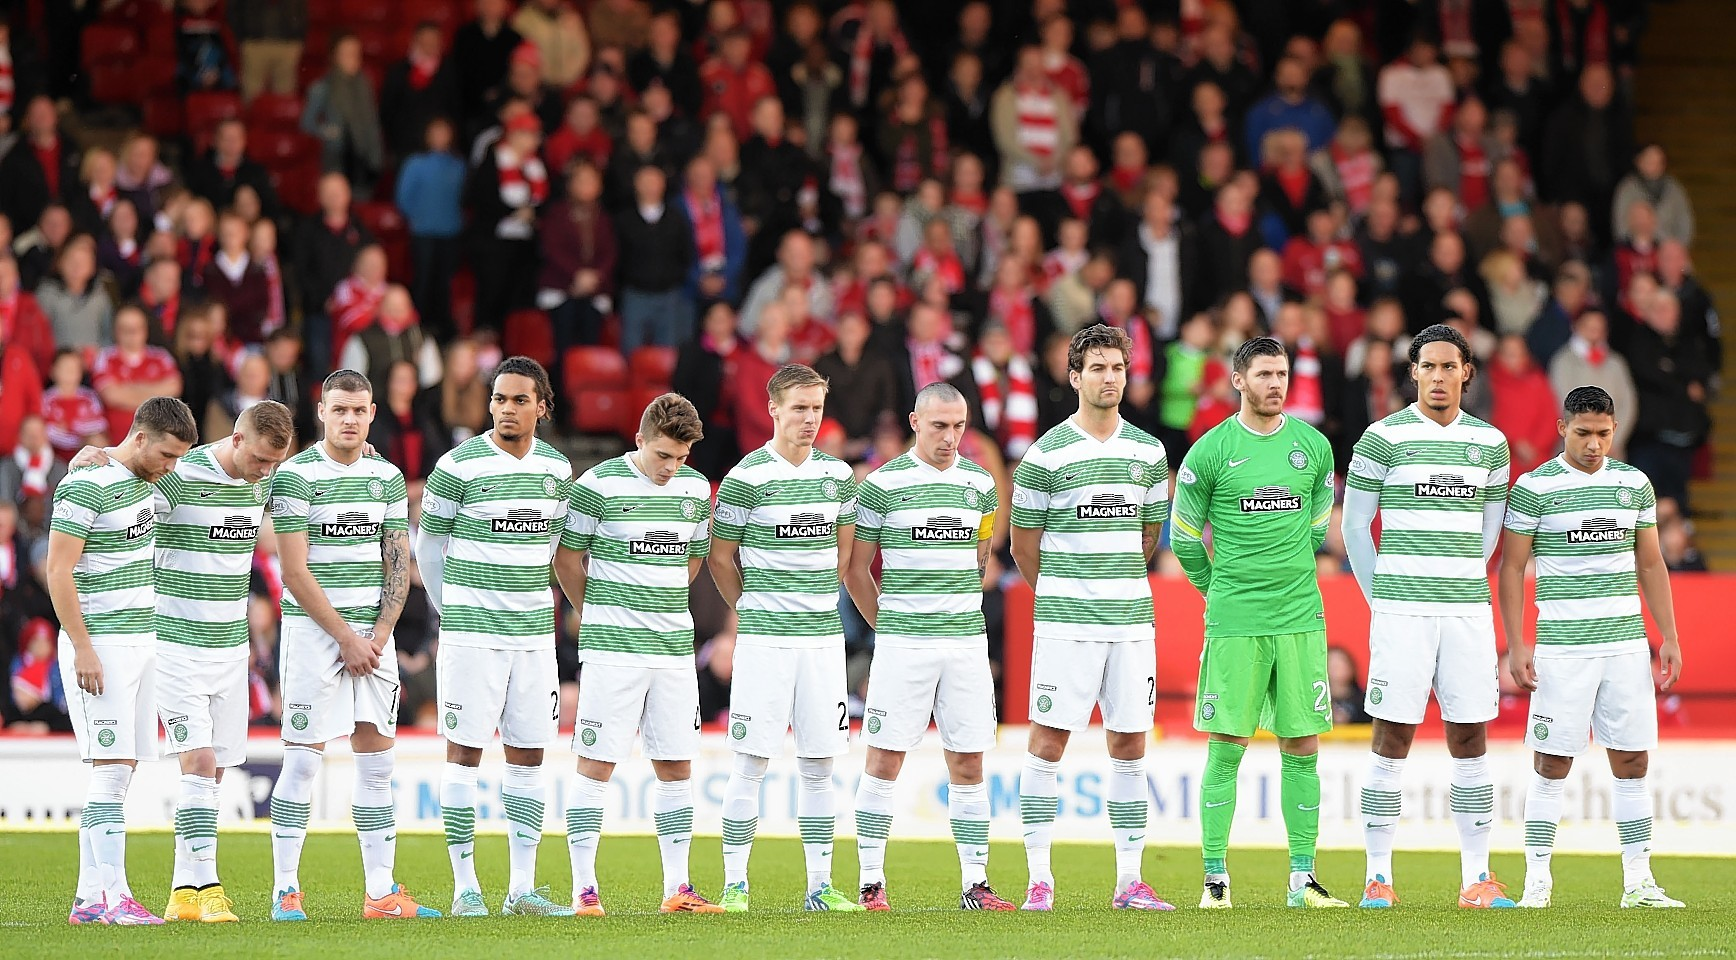 The Celtic players pay their respects prior to the match at Pittodrie.